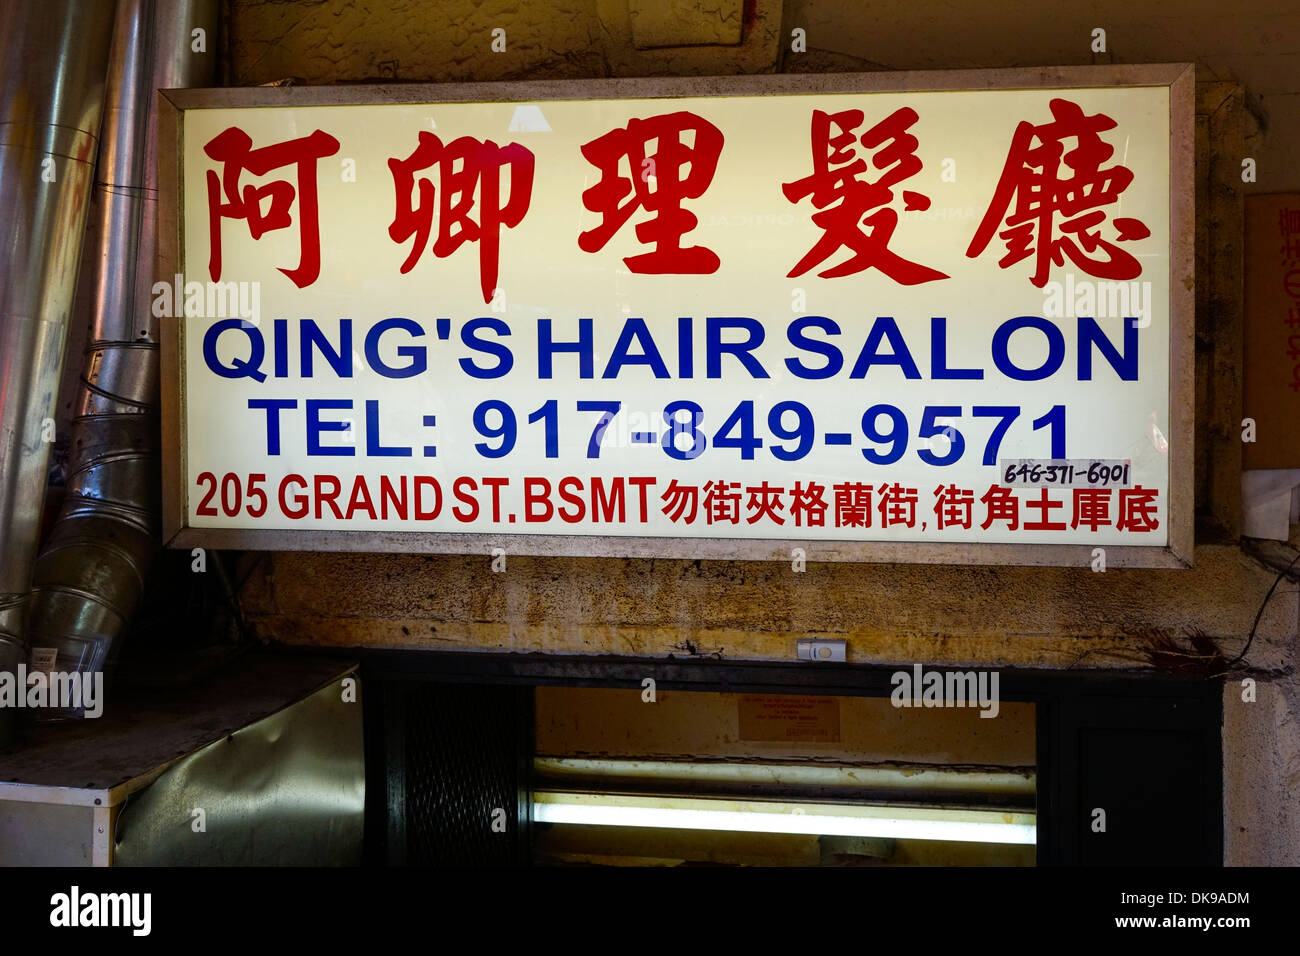 Hair salon in Chinatown in New York City - Stock Image